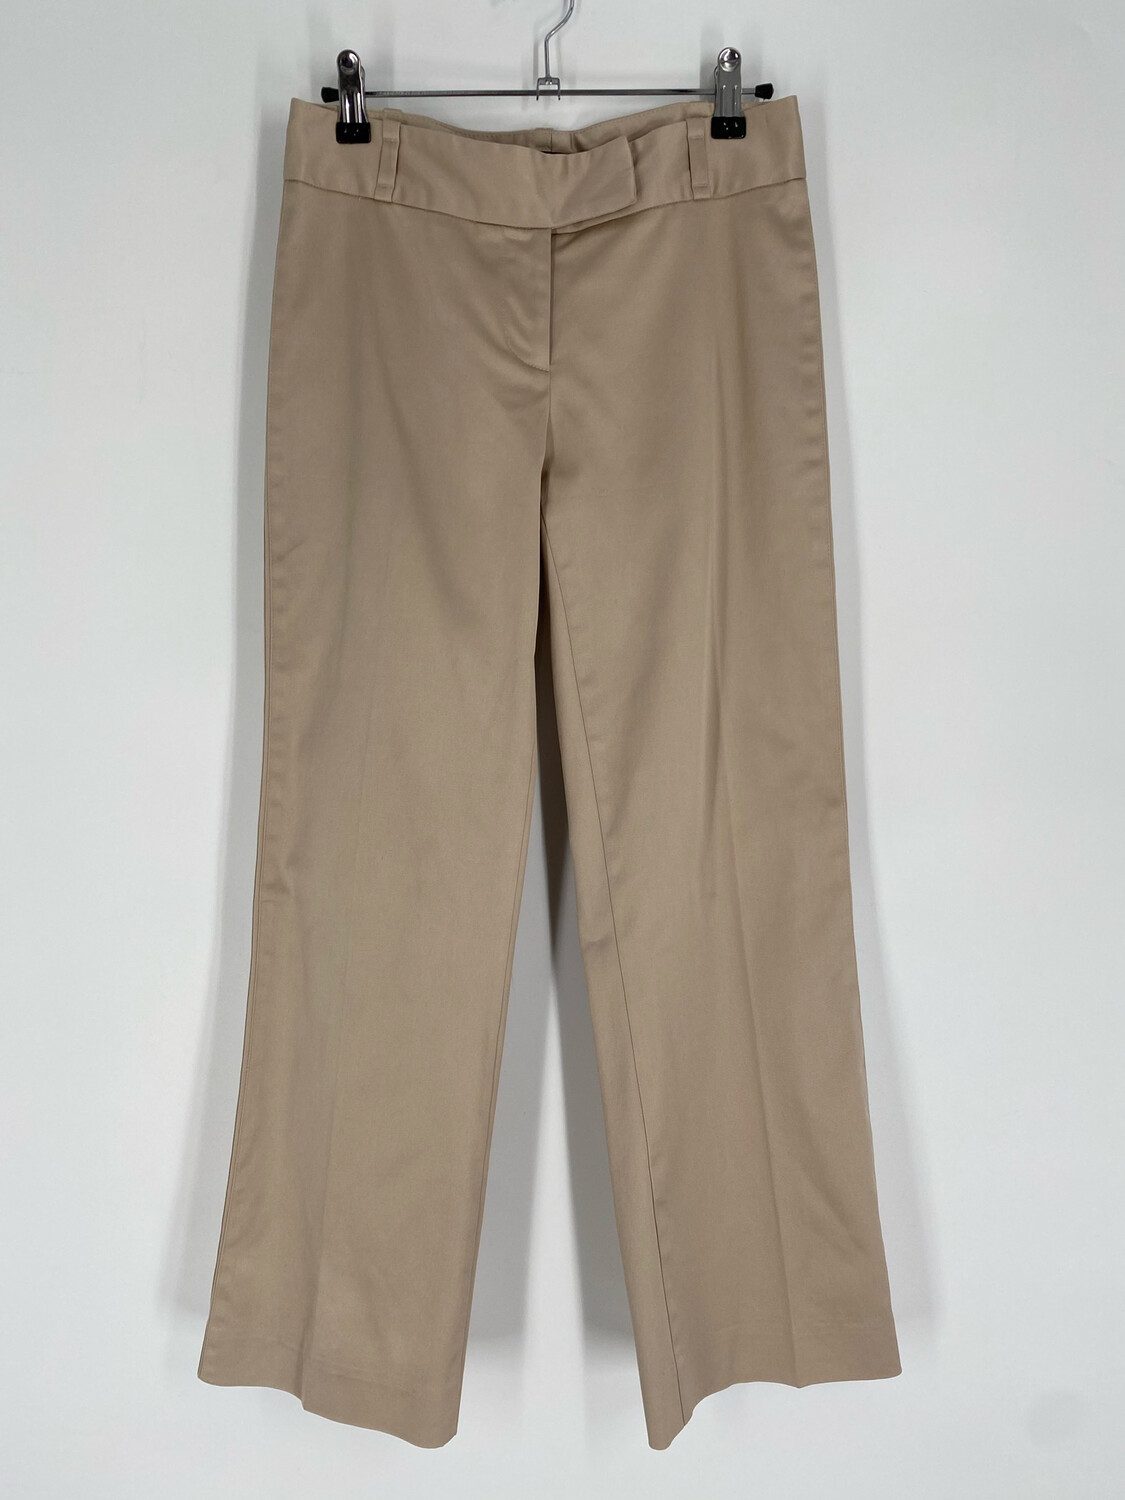 Bebe Low-Rise Silky Tan Flare Pants Size 0